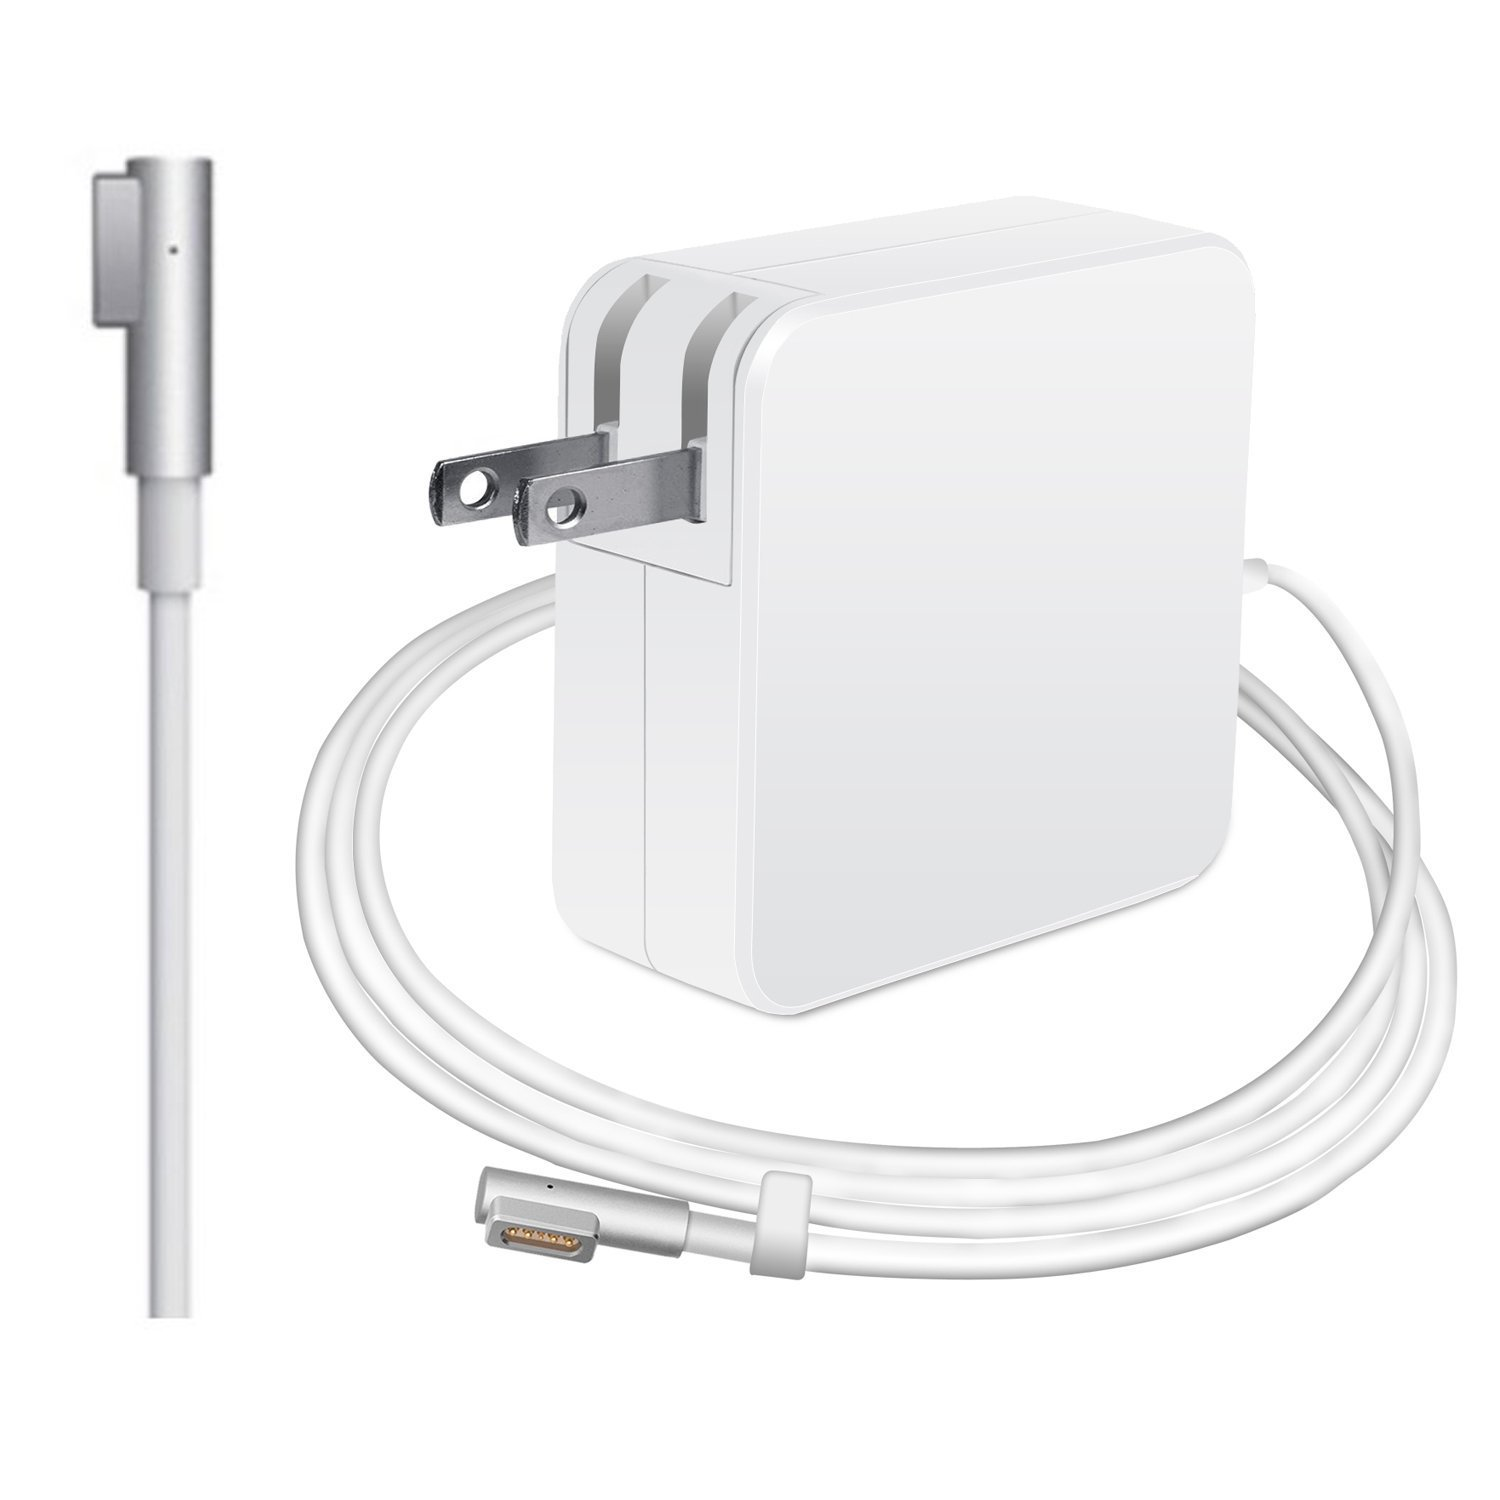 Replacement Macbook Charger, 60W L-Tip Connector AC Power Adapter Charger for Macbook Air